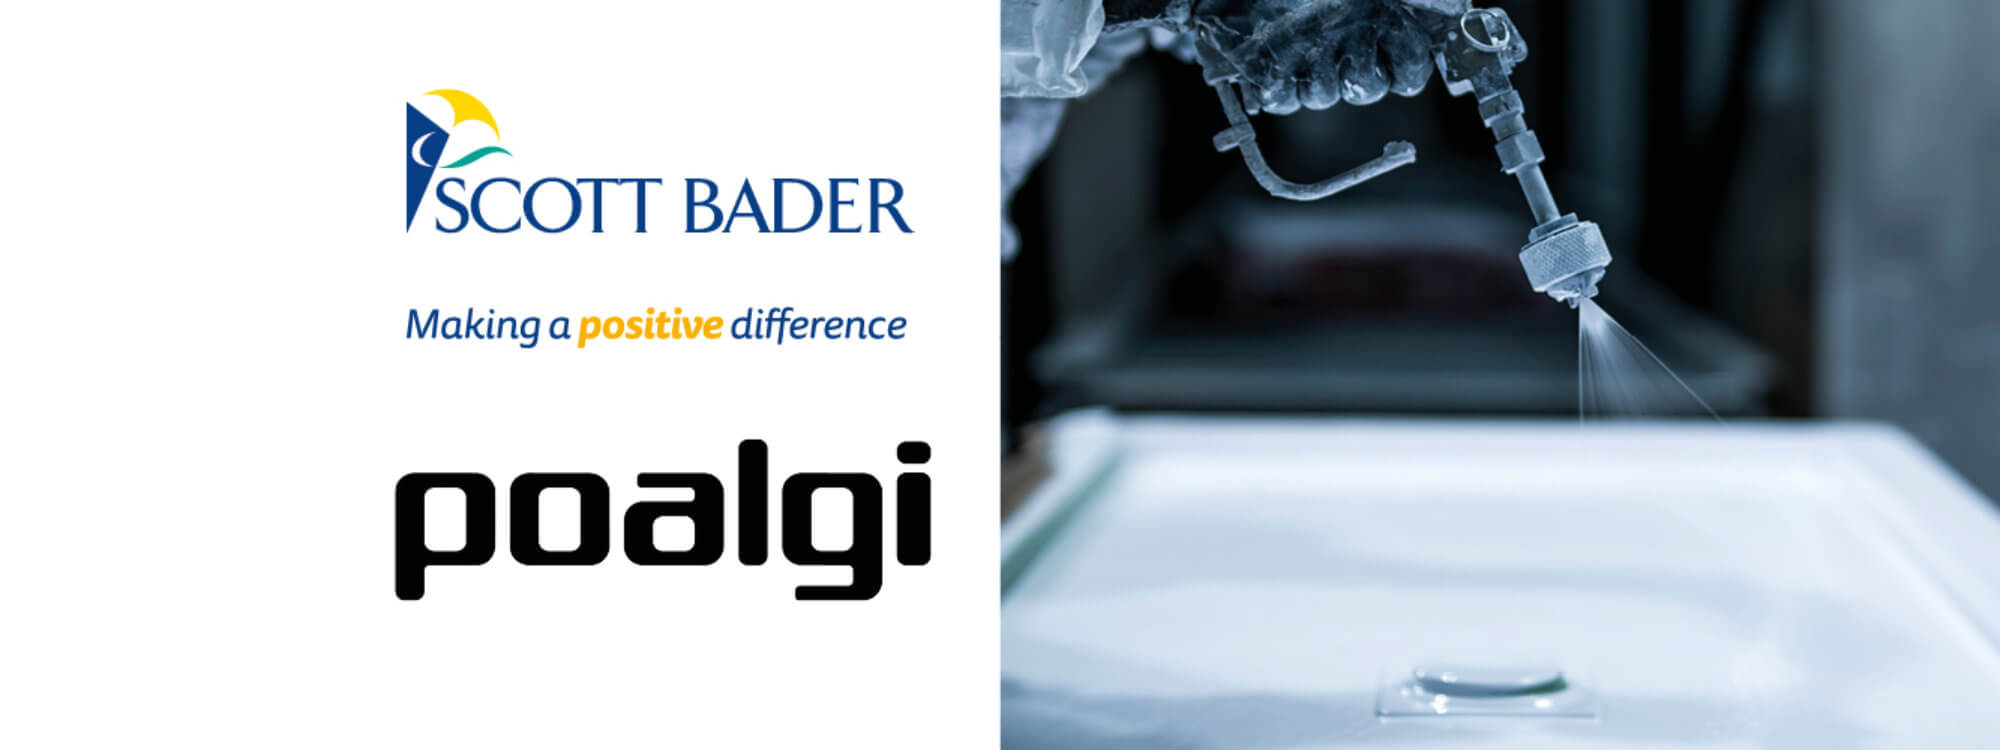 Poalgi finish their entire range of kitchen and bathroom products with Scott Bader's Crystic<sup>®</sup> Gelcoat